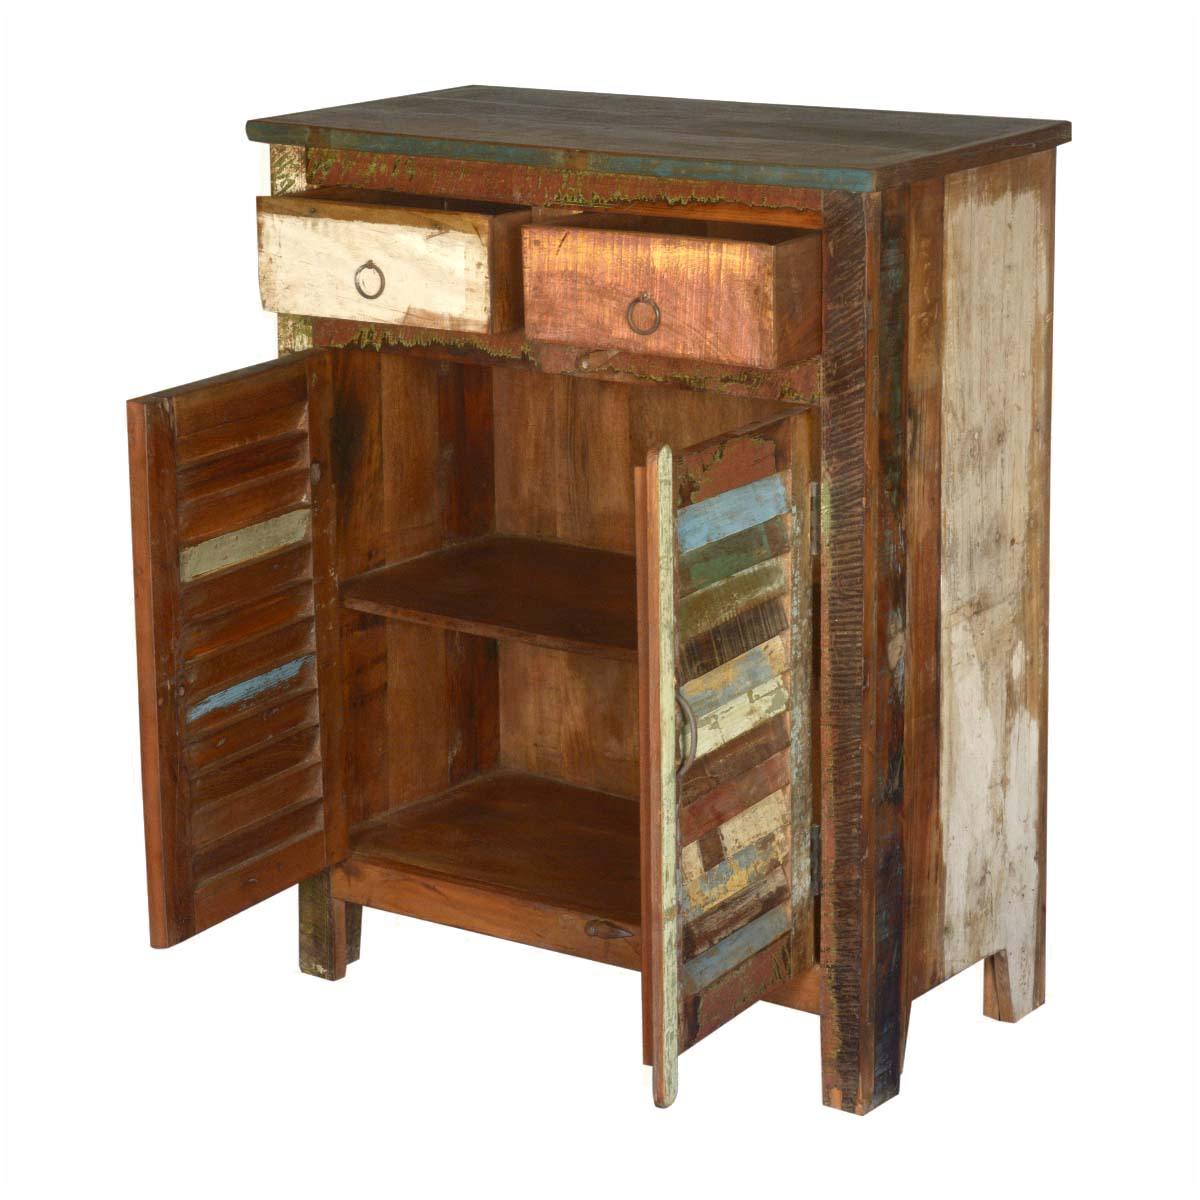 Wood Storage Cabinets: Multicolored Reclaimed Wood Storage Cabinet With 2 Drawers